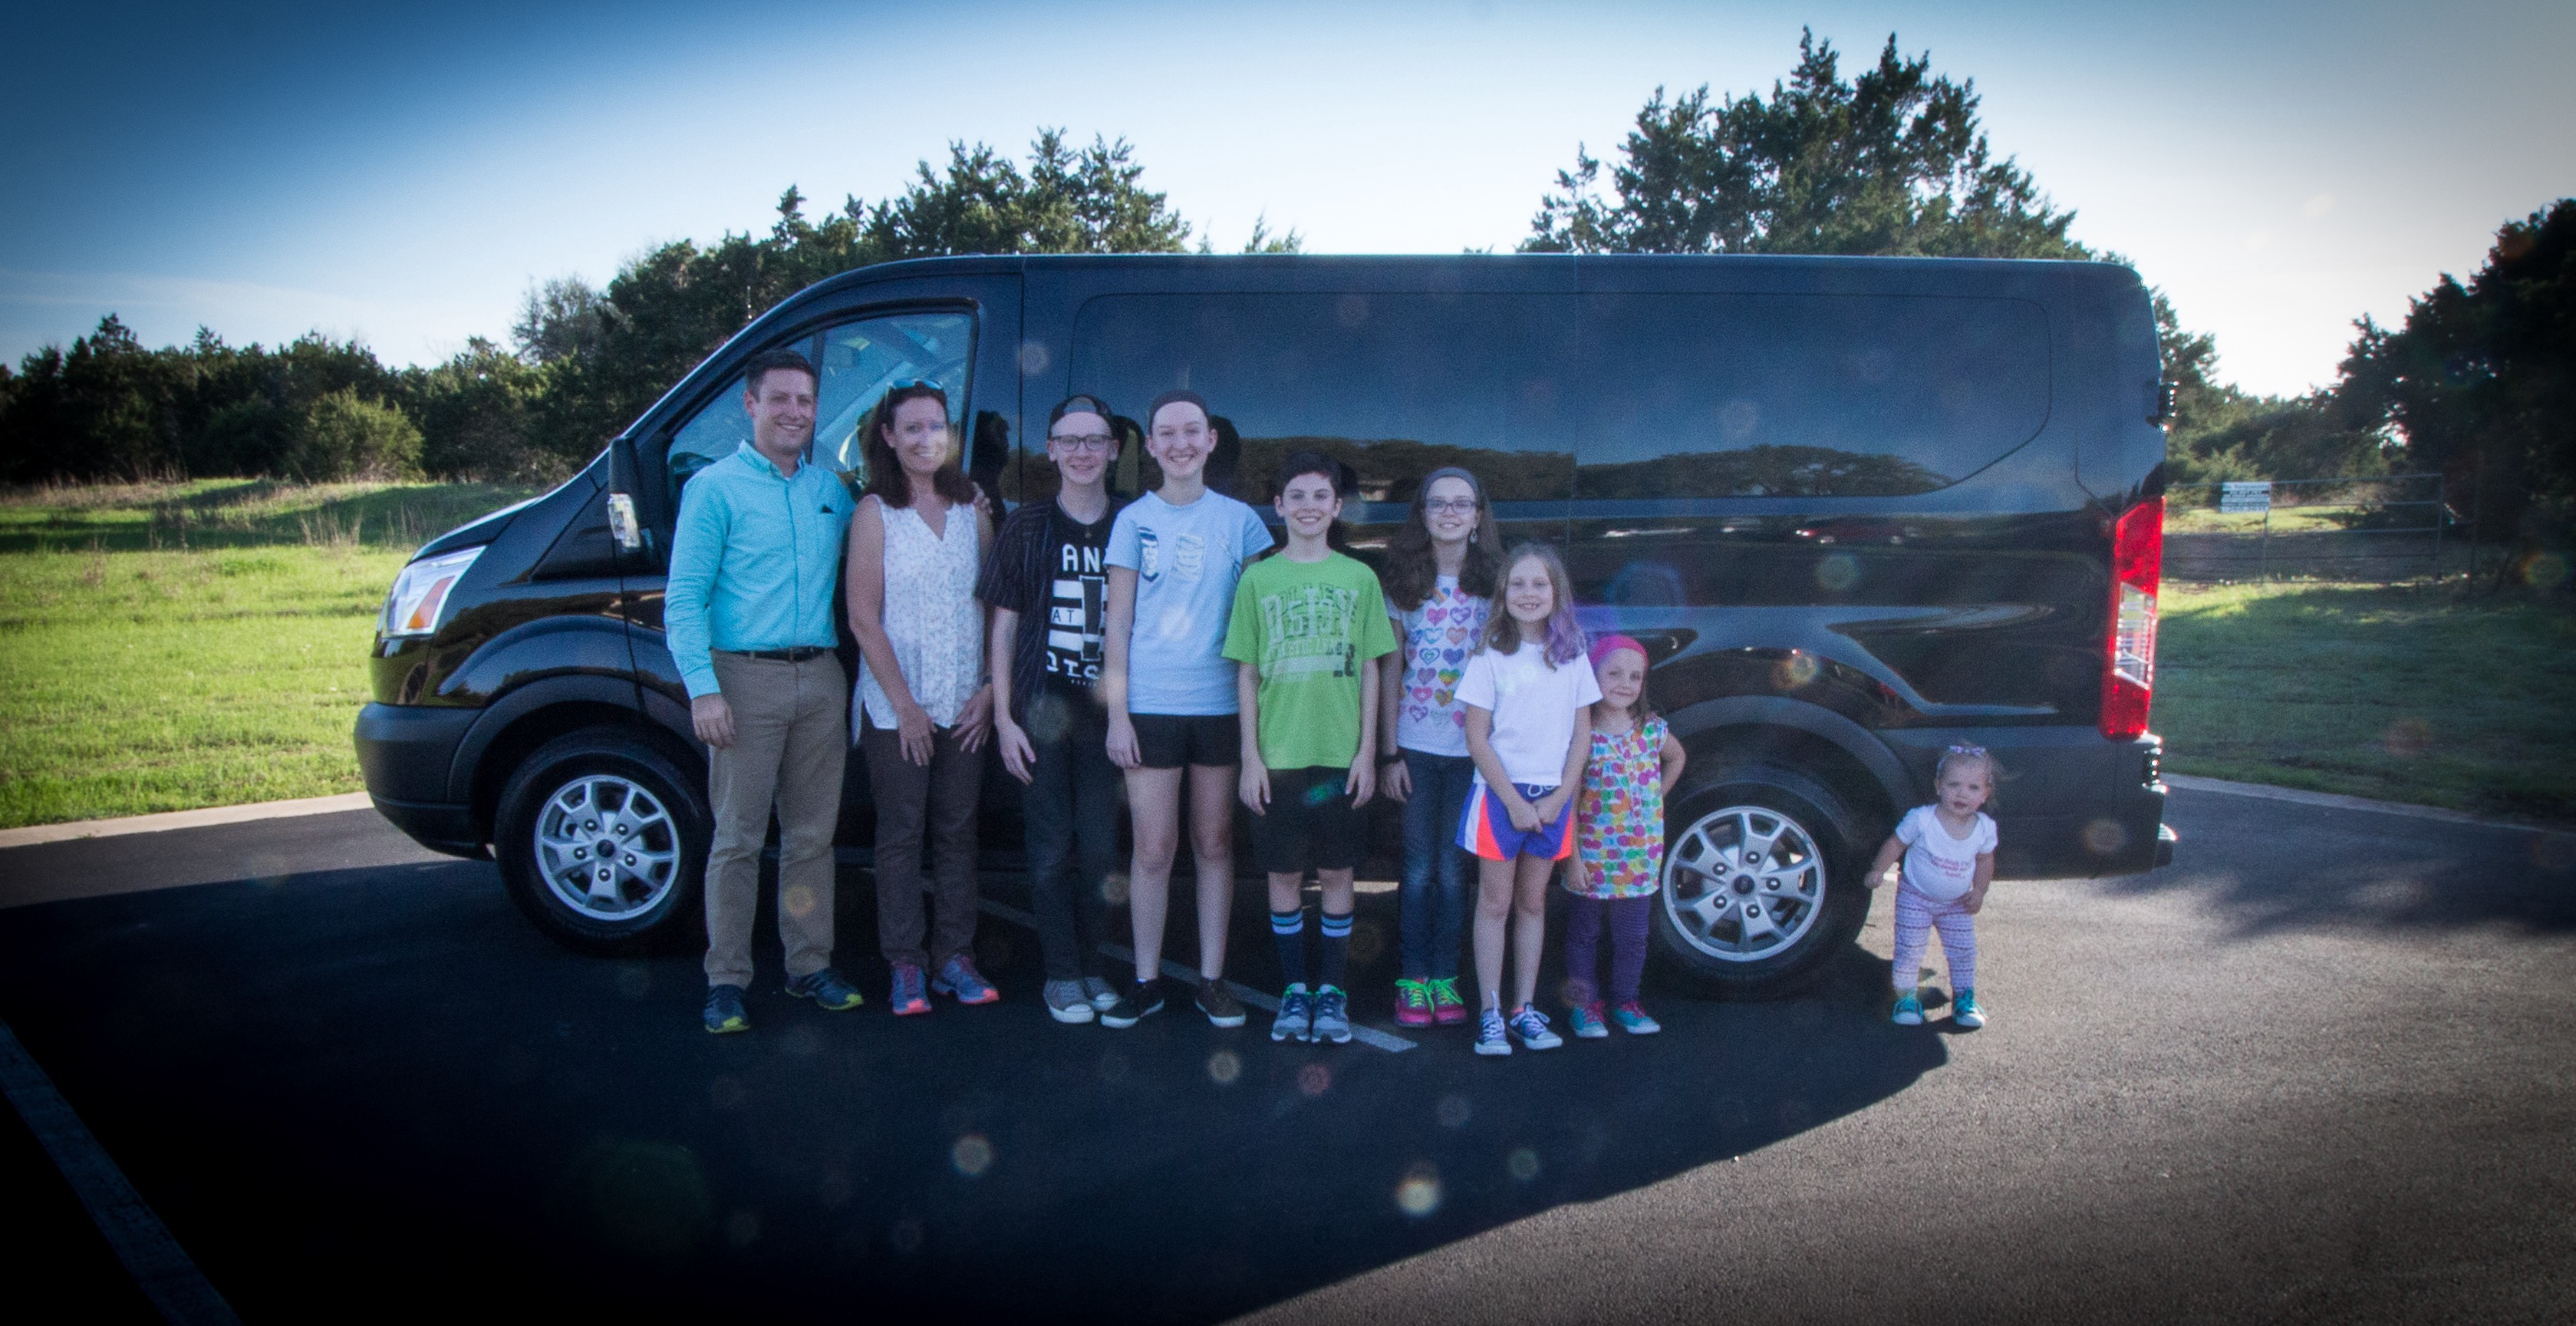 2020 ford transit review large family edition by marshall hines medium 2020 ford transit review large family